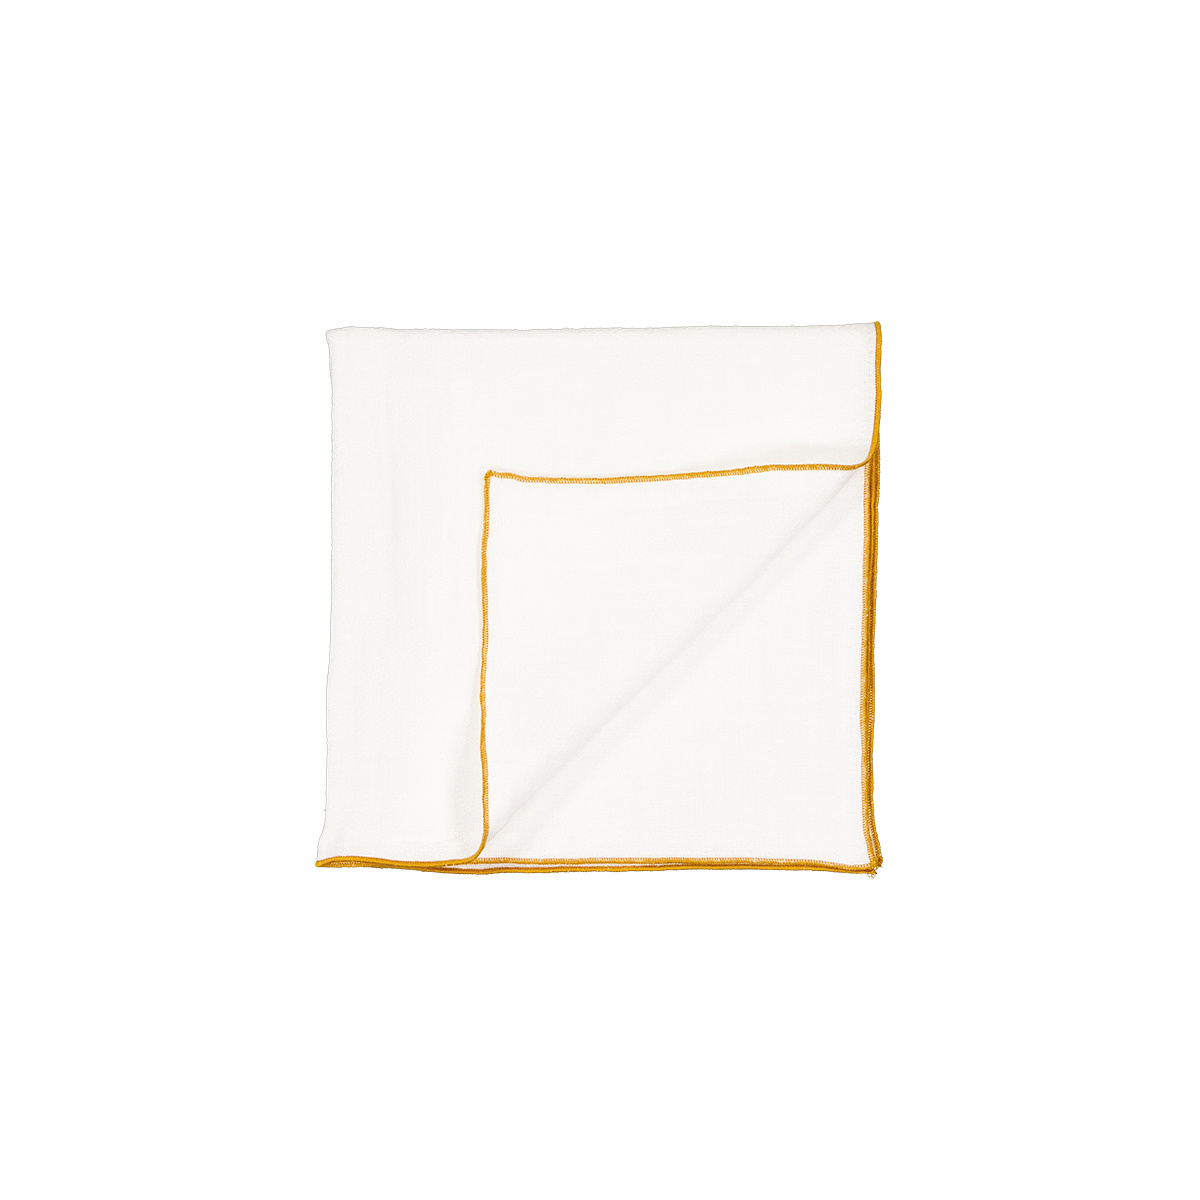 Serviette de table Tavola blanche